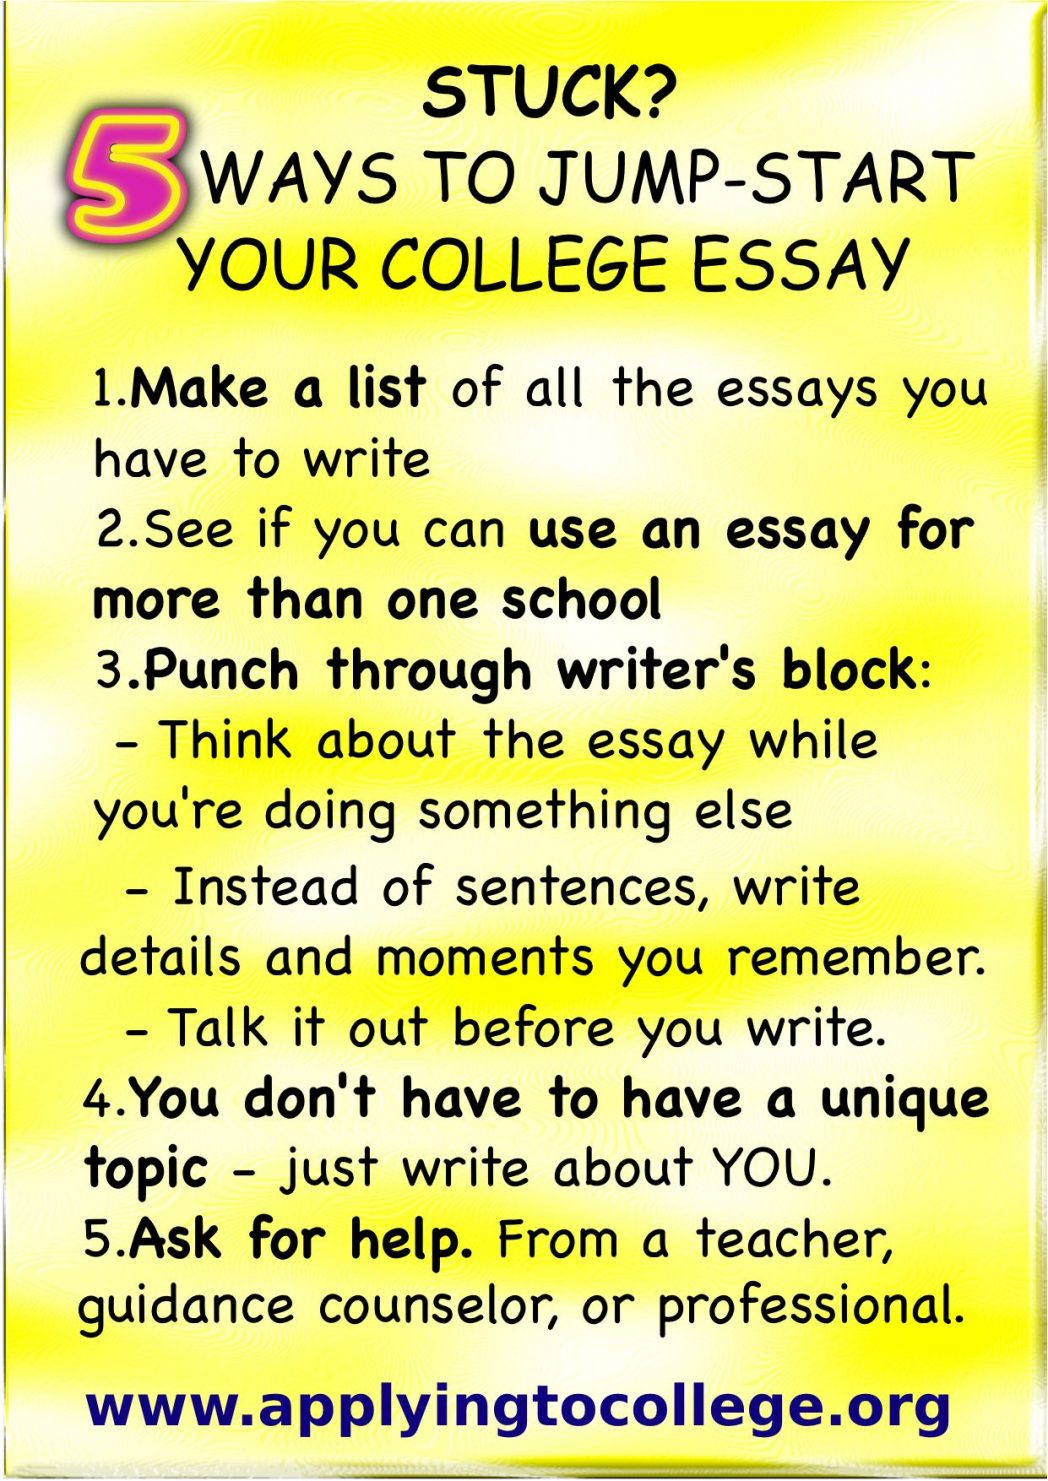 016 How To Start College Application Essay Ways Reduce Stress After Highschool About Yourself Writing Hook With Quote Examples Exceptional A Good Write Wikihow Full